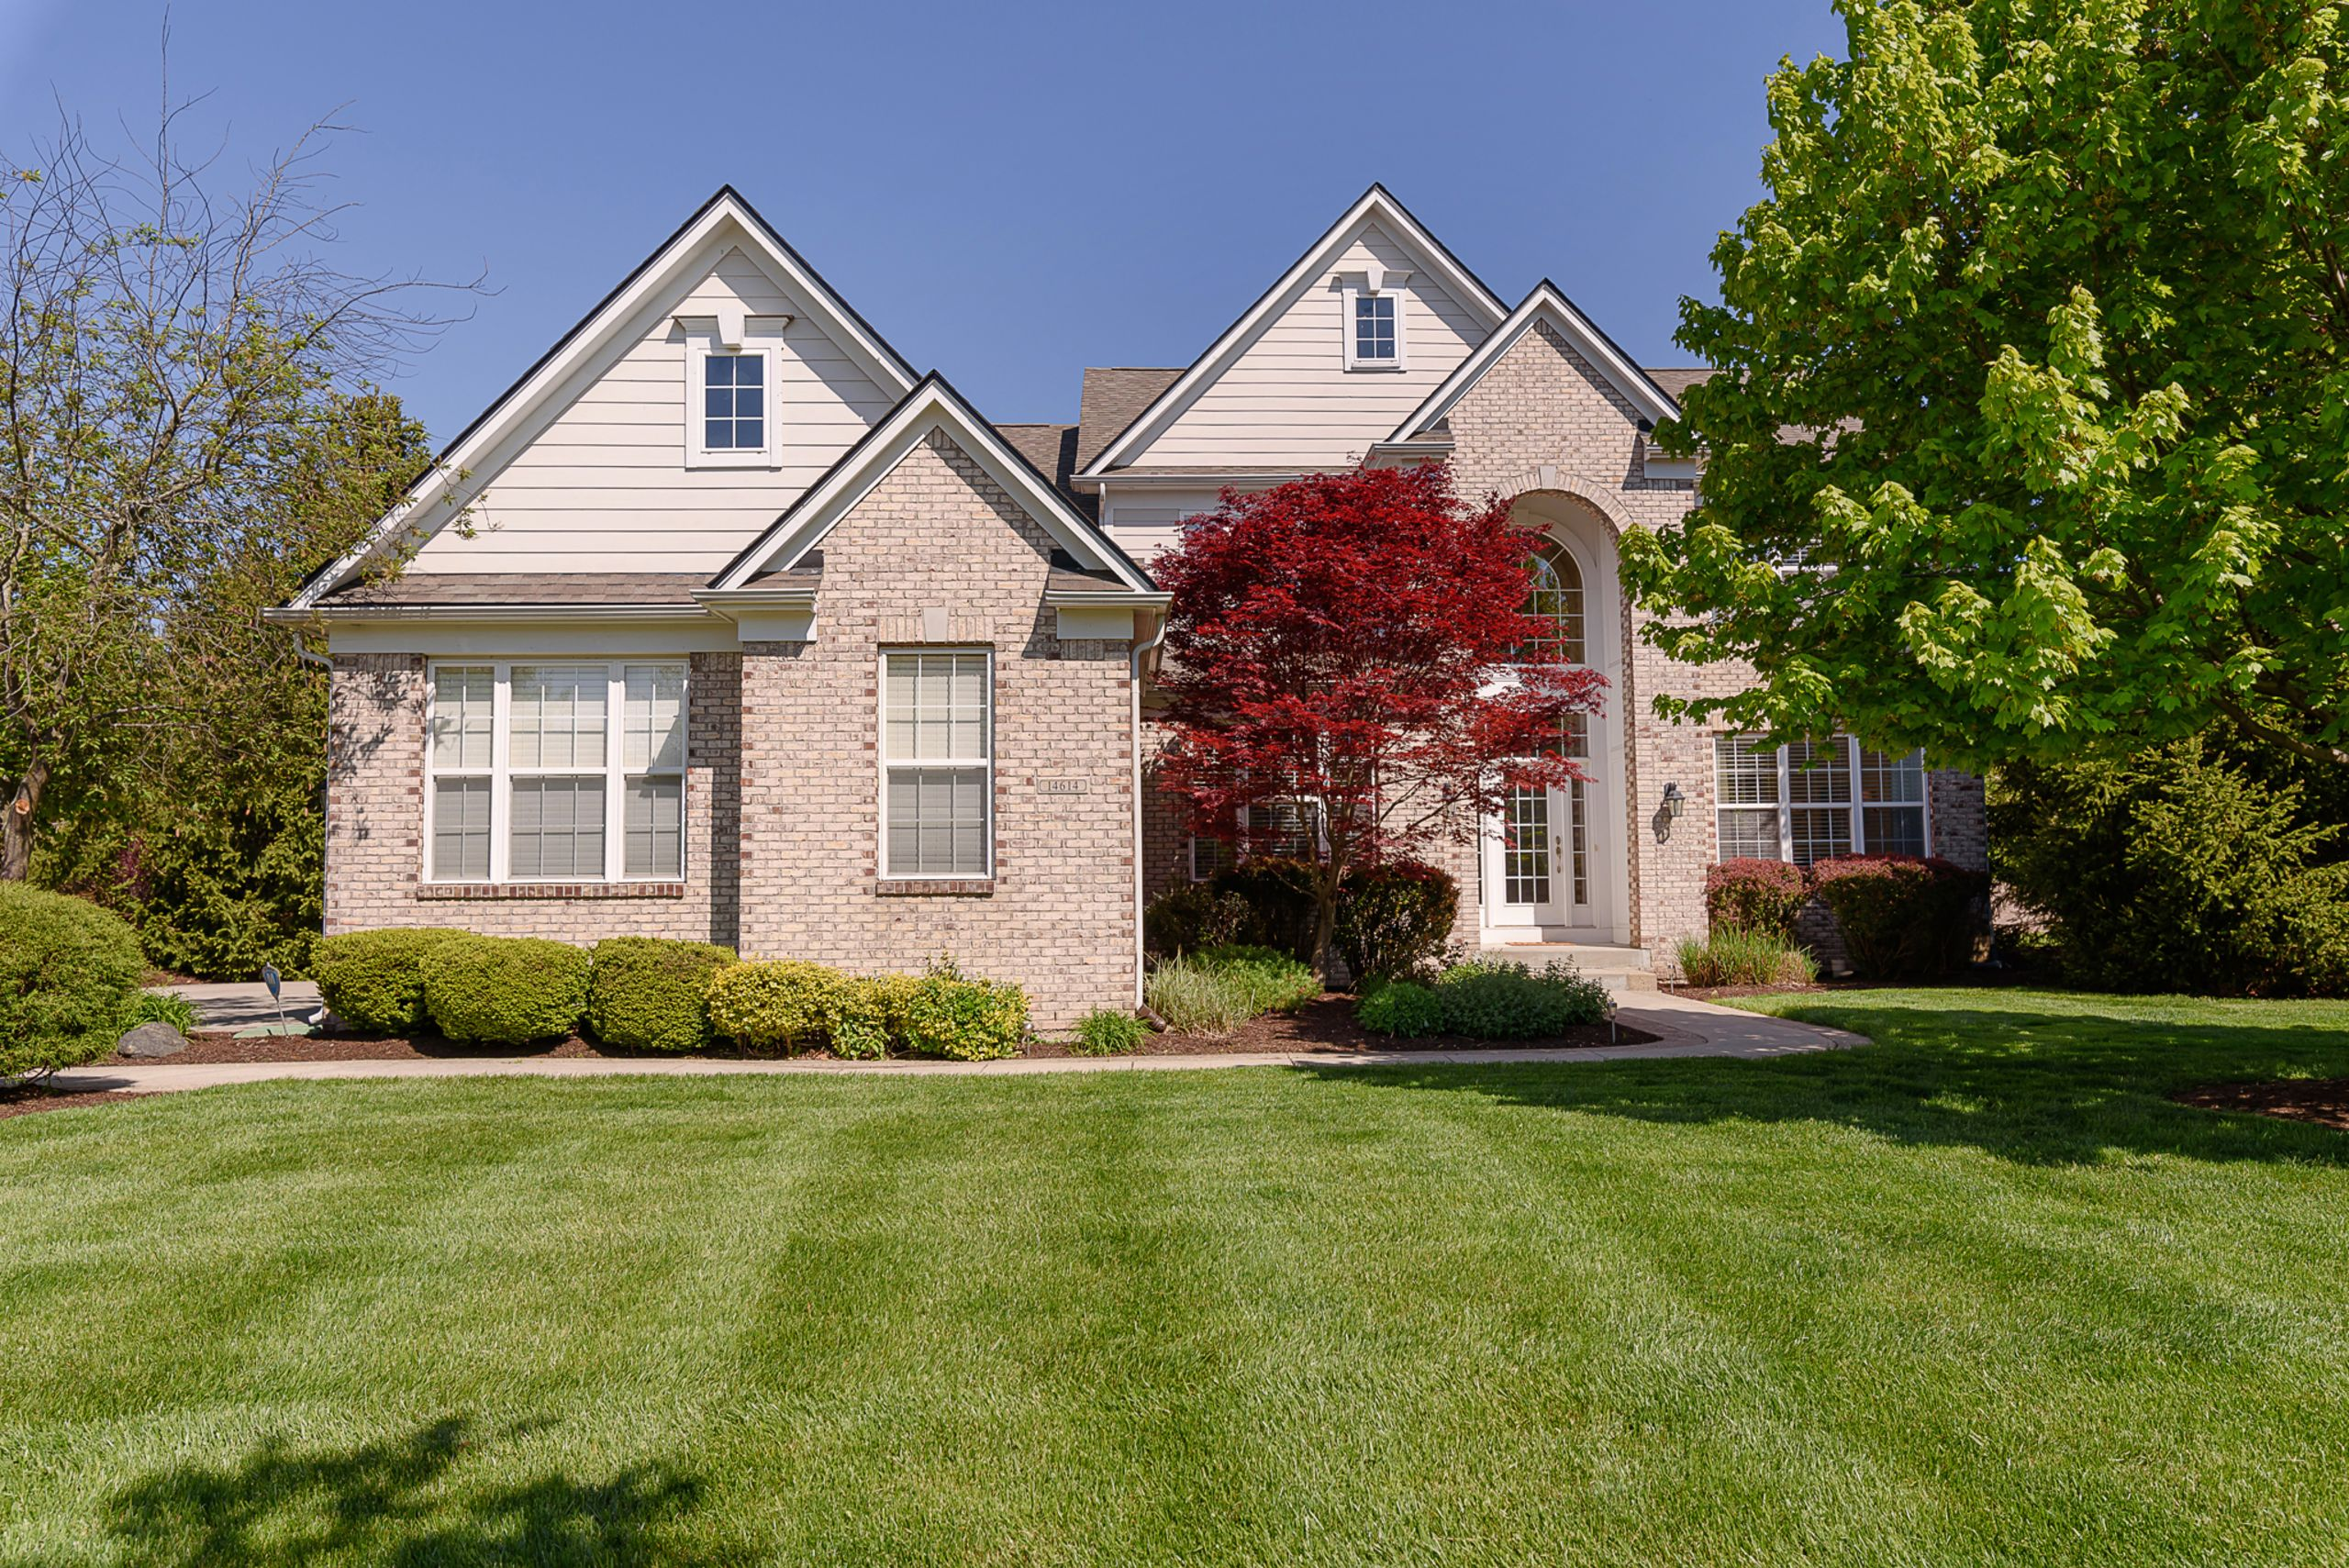 PENDING IN FISHERS (2 DOM, MULTIPLE OFFERS)